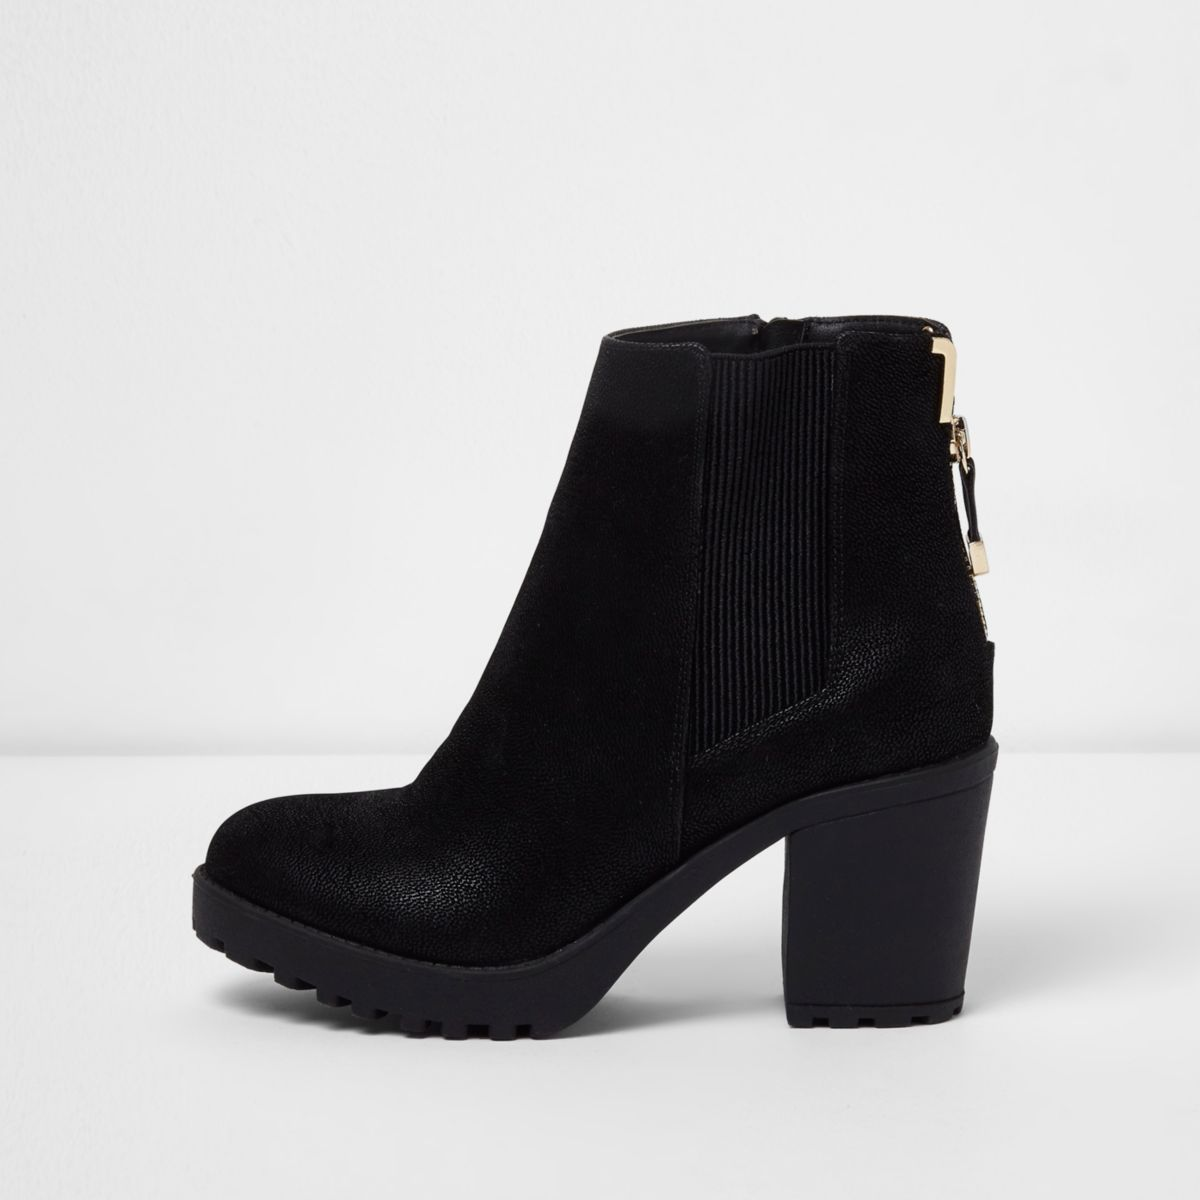 Black zip back heeled boots